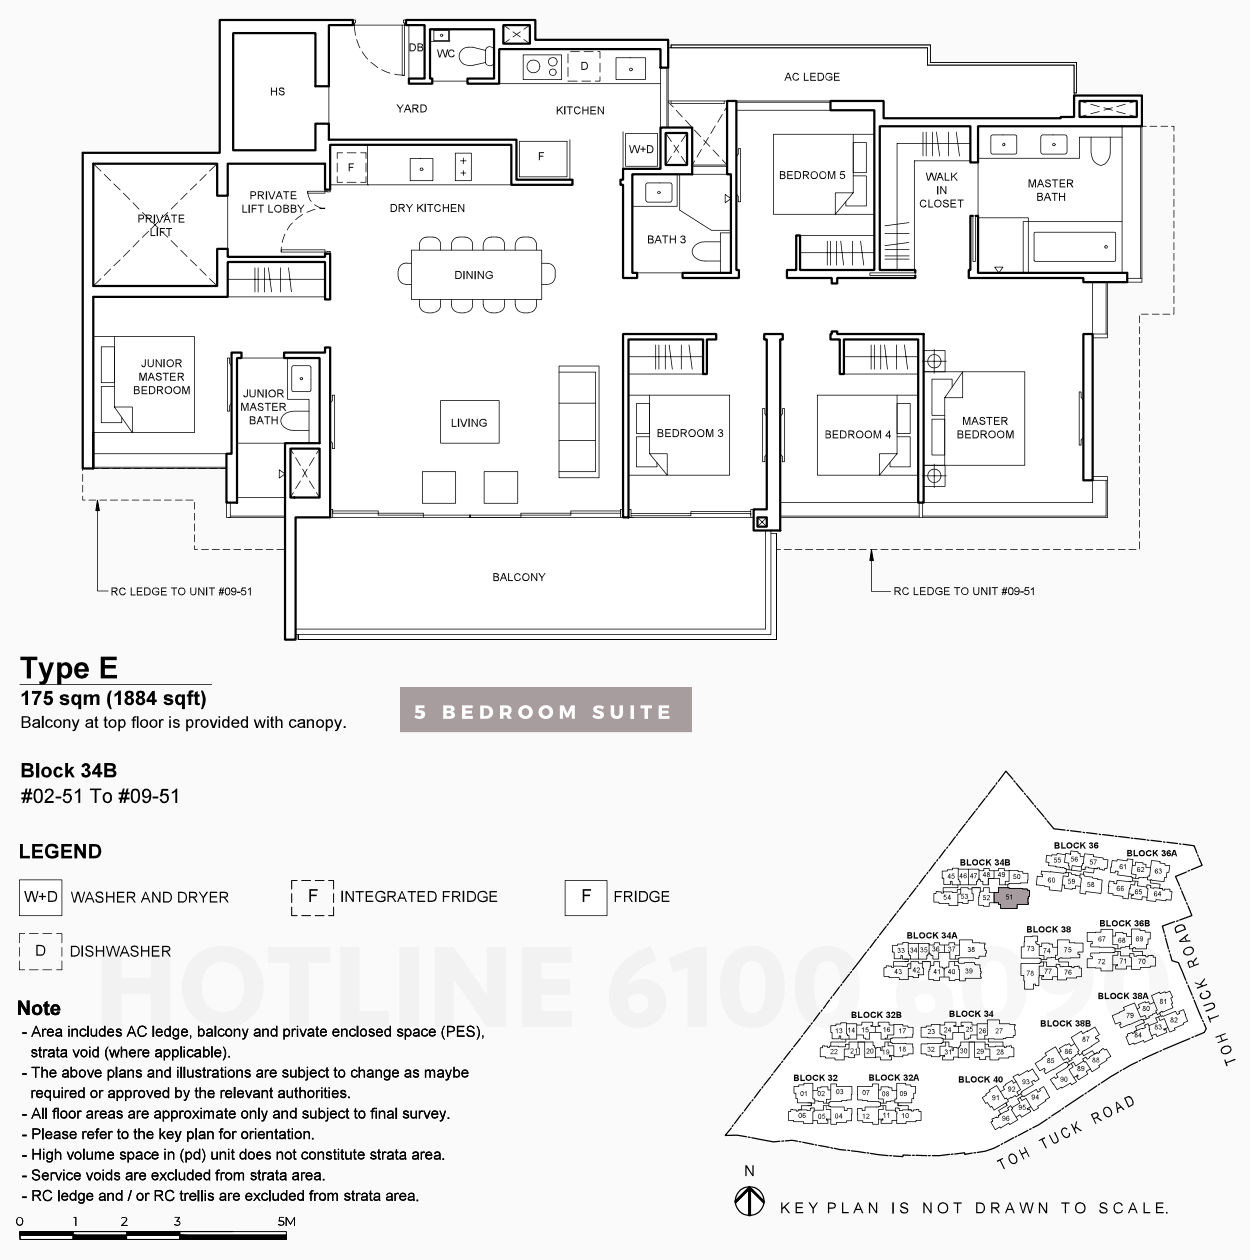 Forett Floor Plans . 5 Bedroom Suite Type E